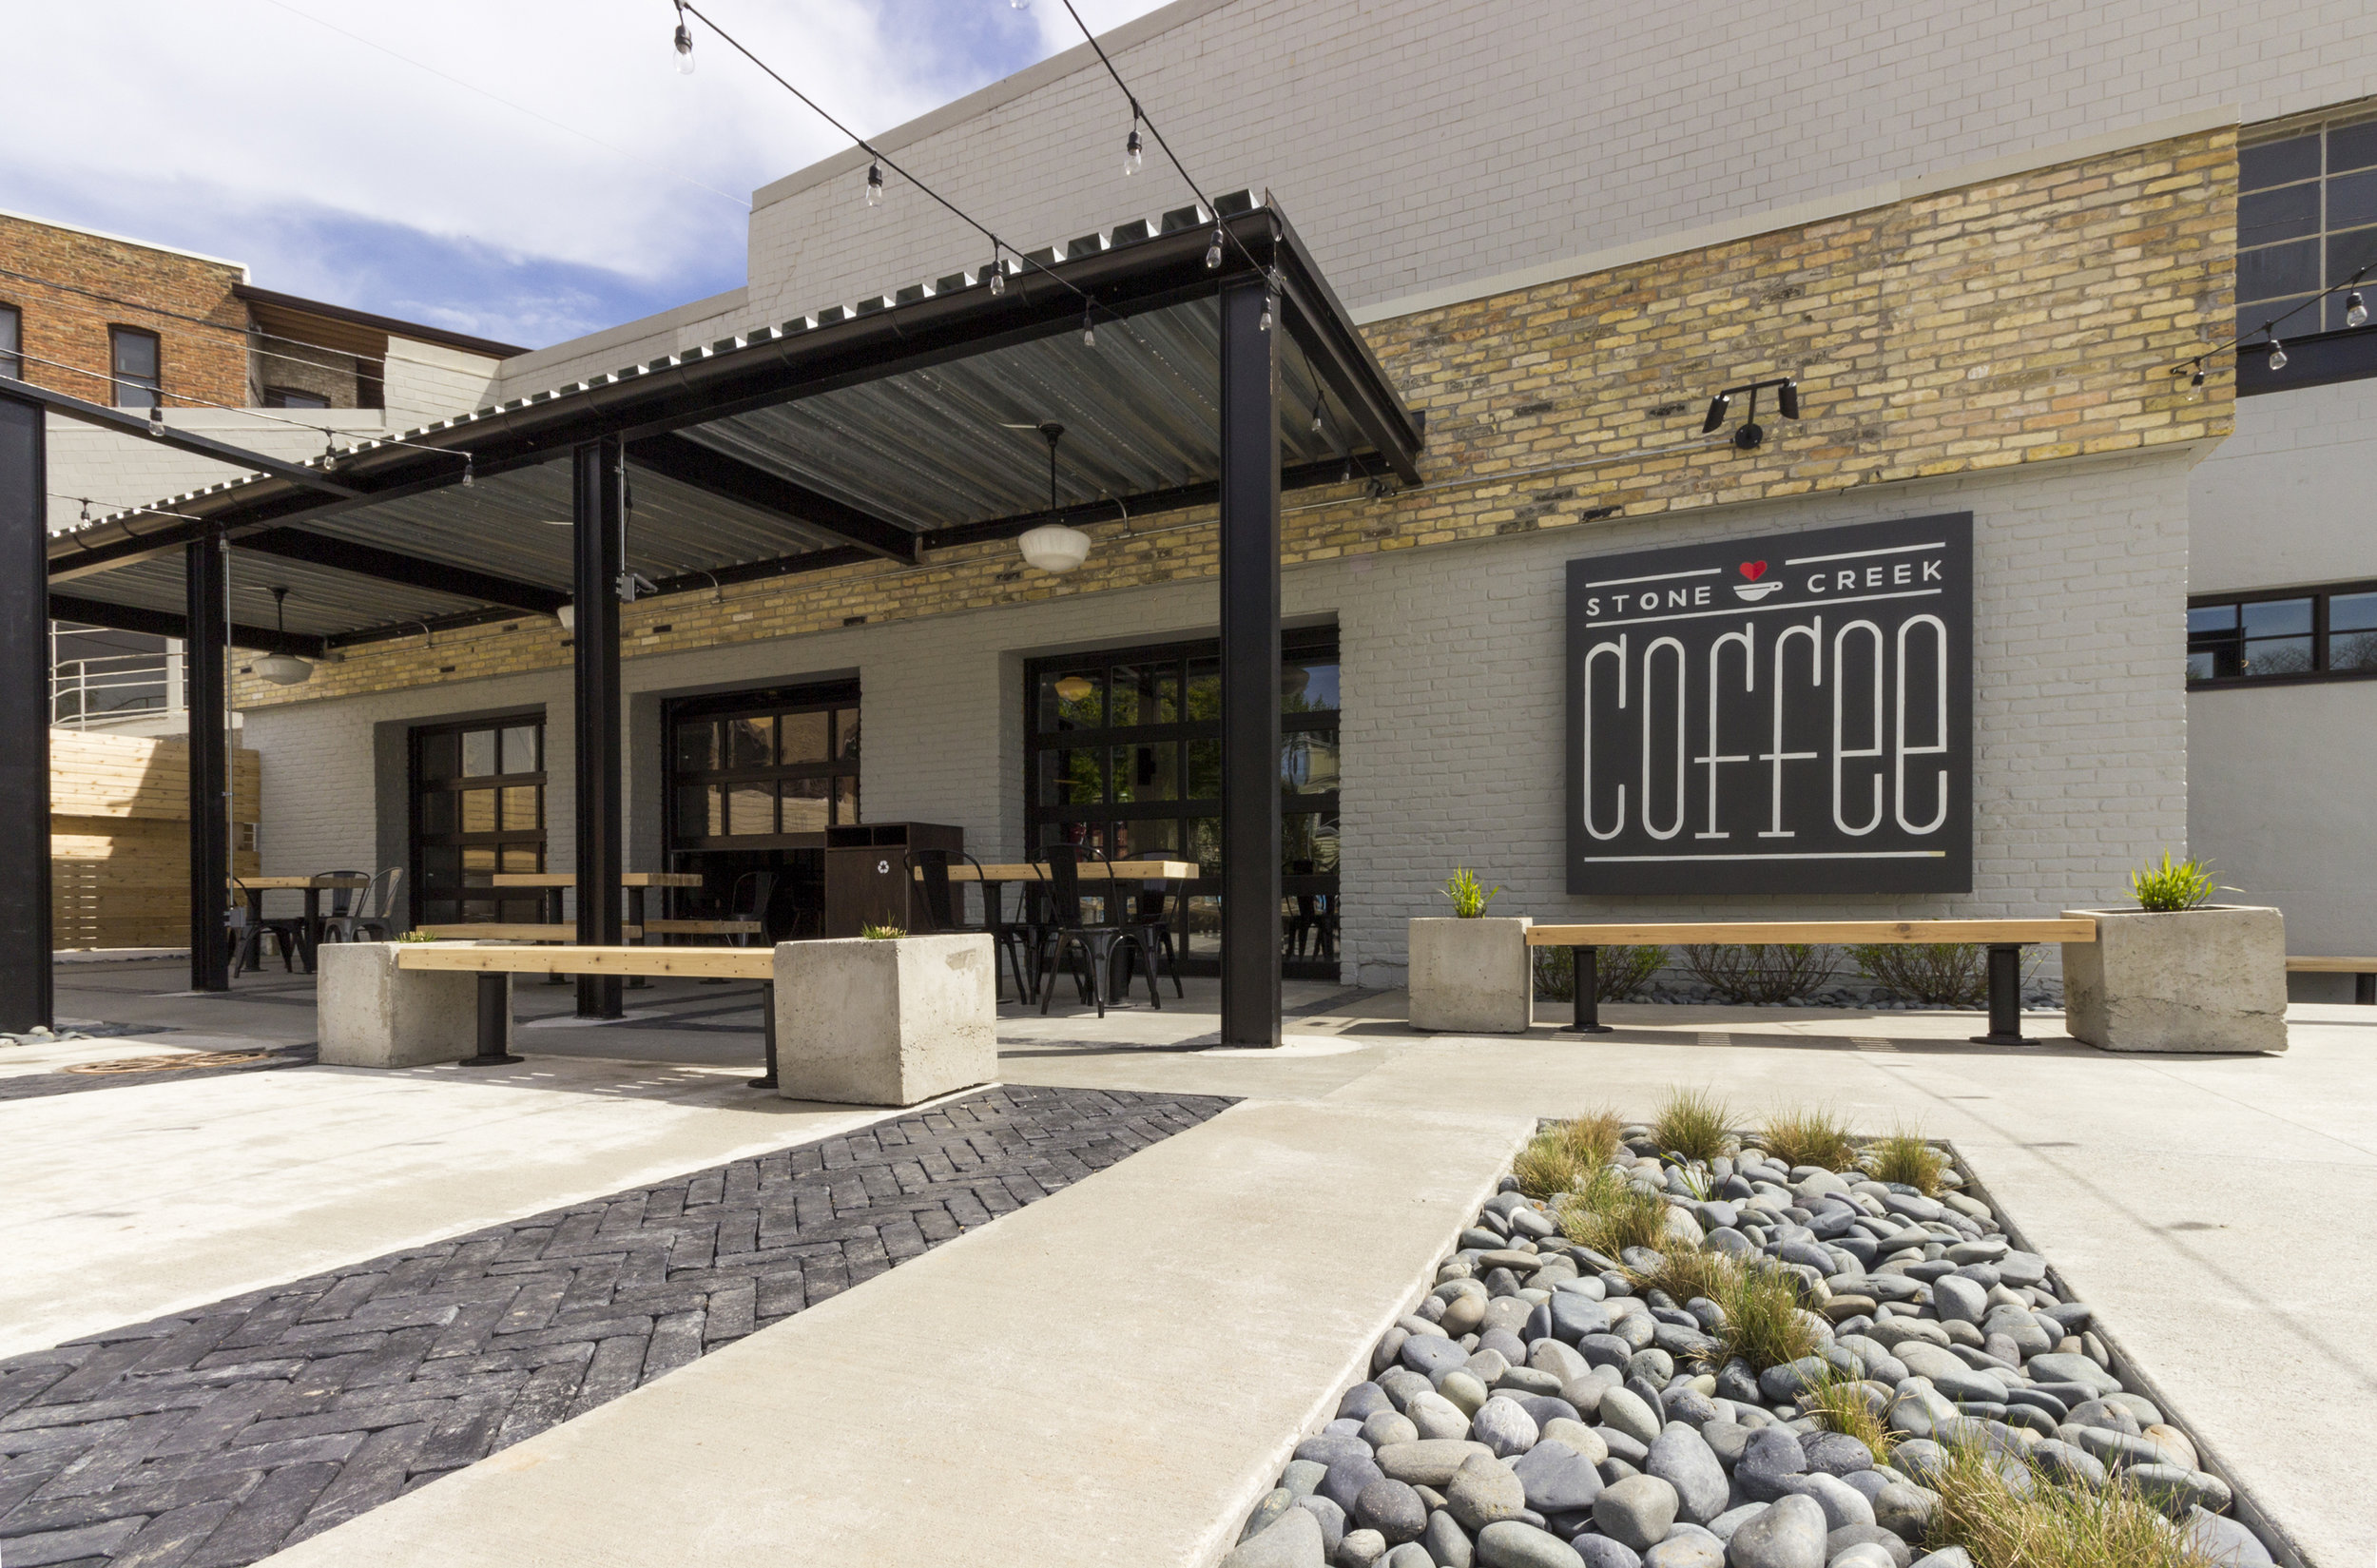 1_GROTH Design Group_Stone Creek Coffee.jpg